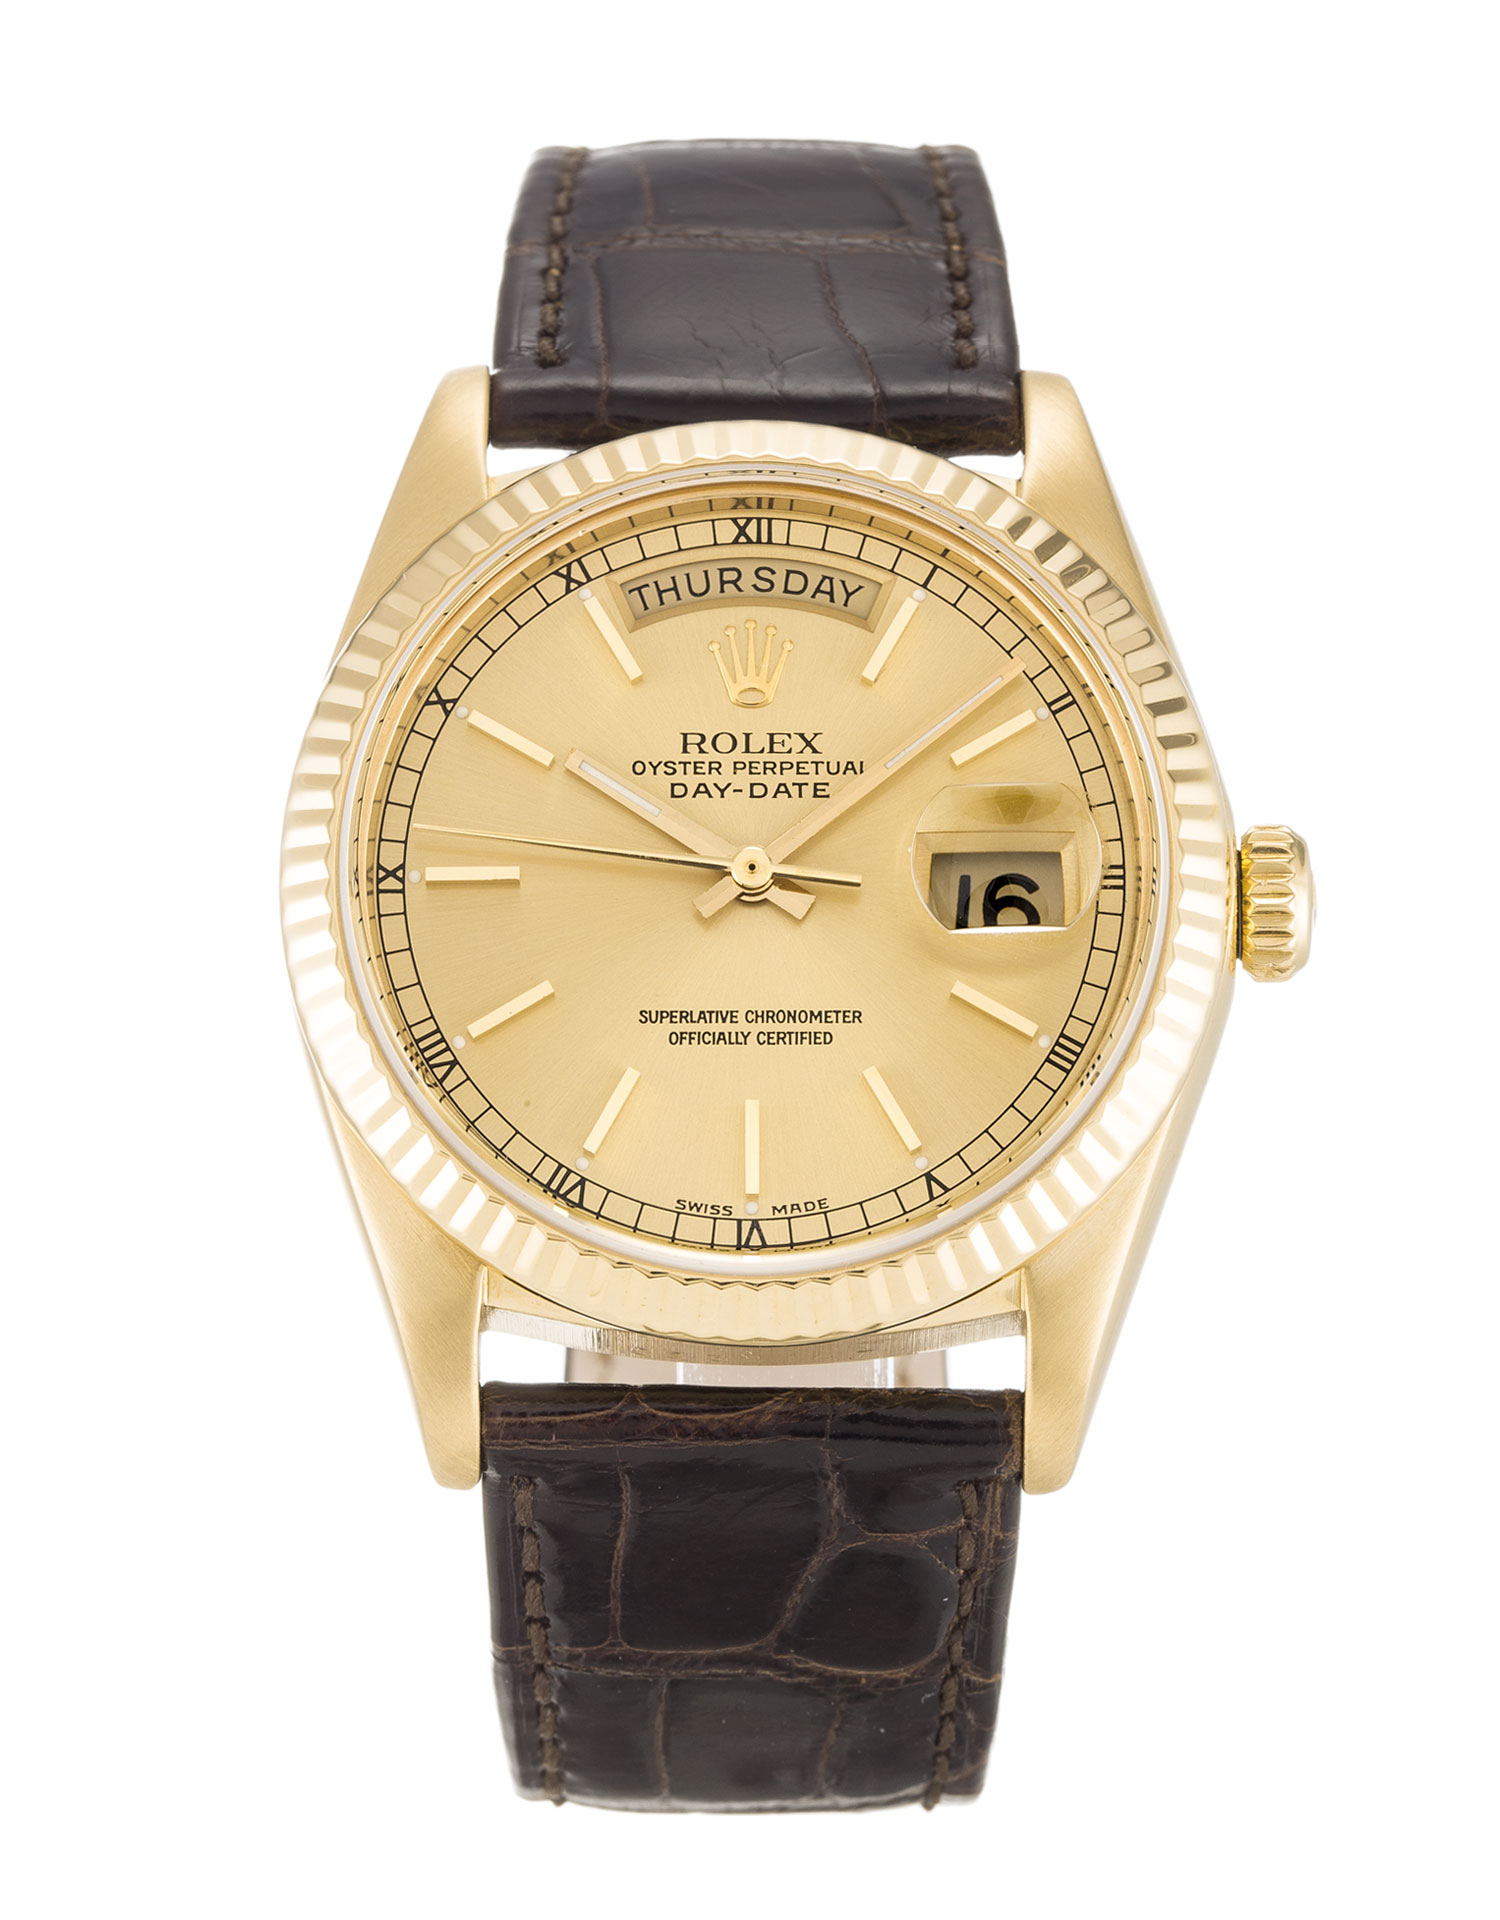 Rolex Day-date 18038 Unisex 36 Mm Yellow Gold Case Automatic Movement – iapac.to